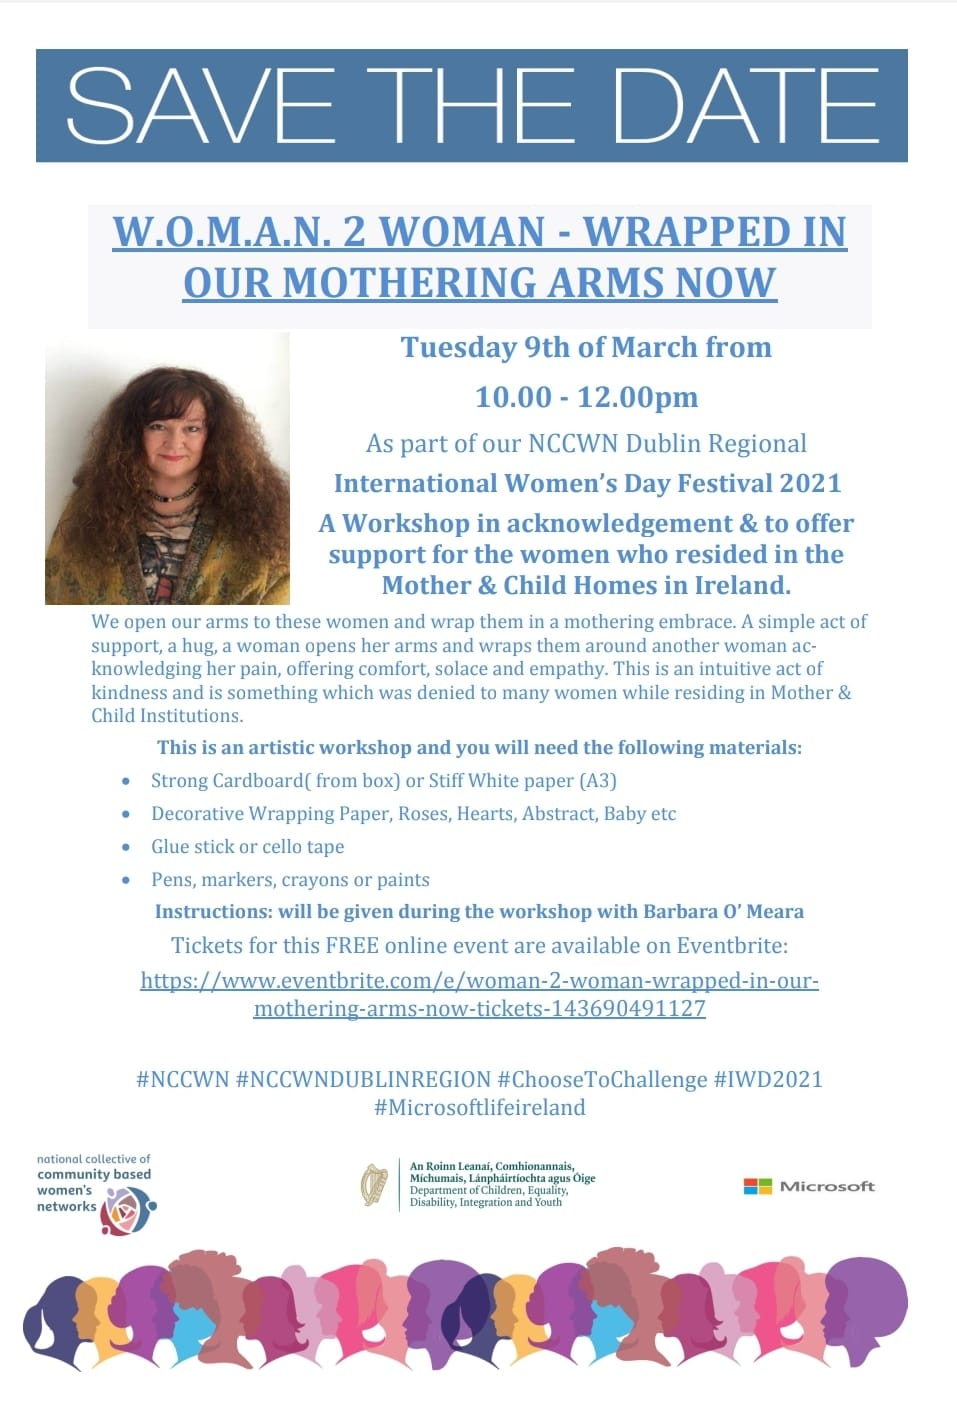 W.O.M.A.N. 2 WOMAN - WRAPPED IN OUR MOTHERING ARMS NOW on Tuesday 9th of March from 10.00 - 12.00pm As part of our NCCWN Dublin Regional International Women's Day Festival 2021.